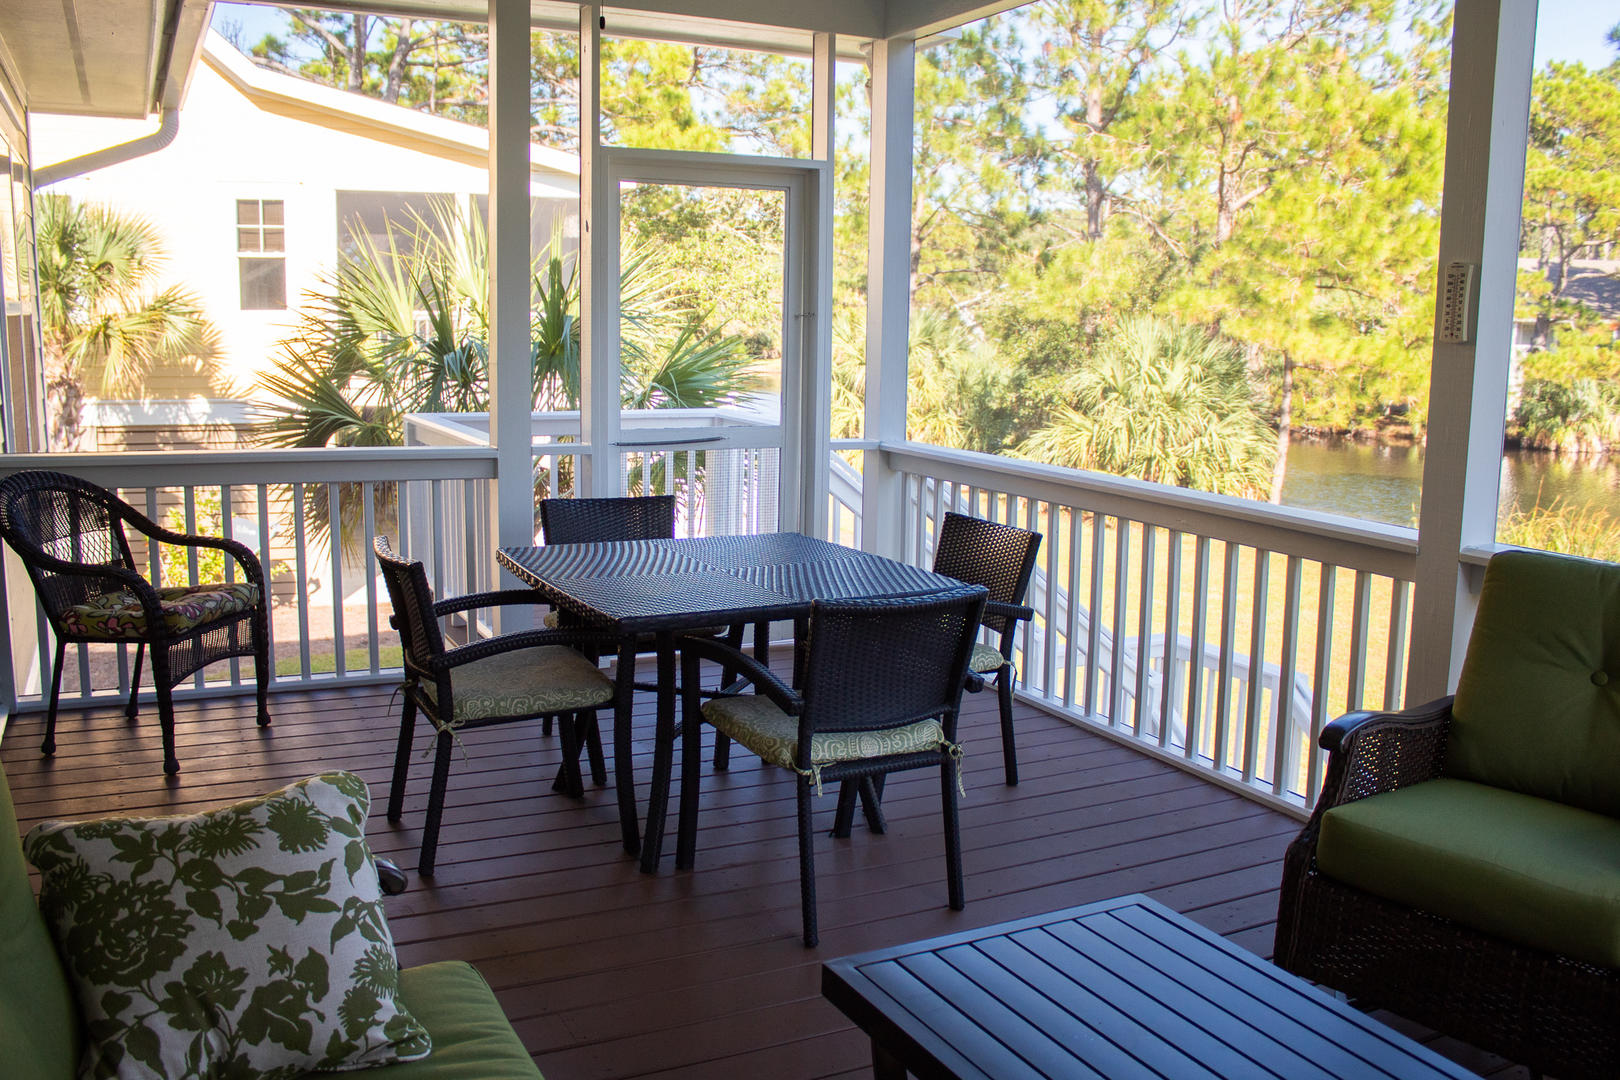 Off dining room and kitchen, screened with outdoor table and seating